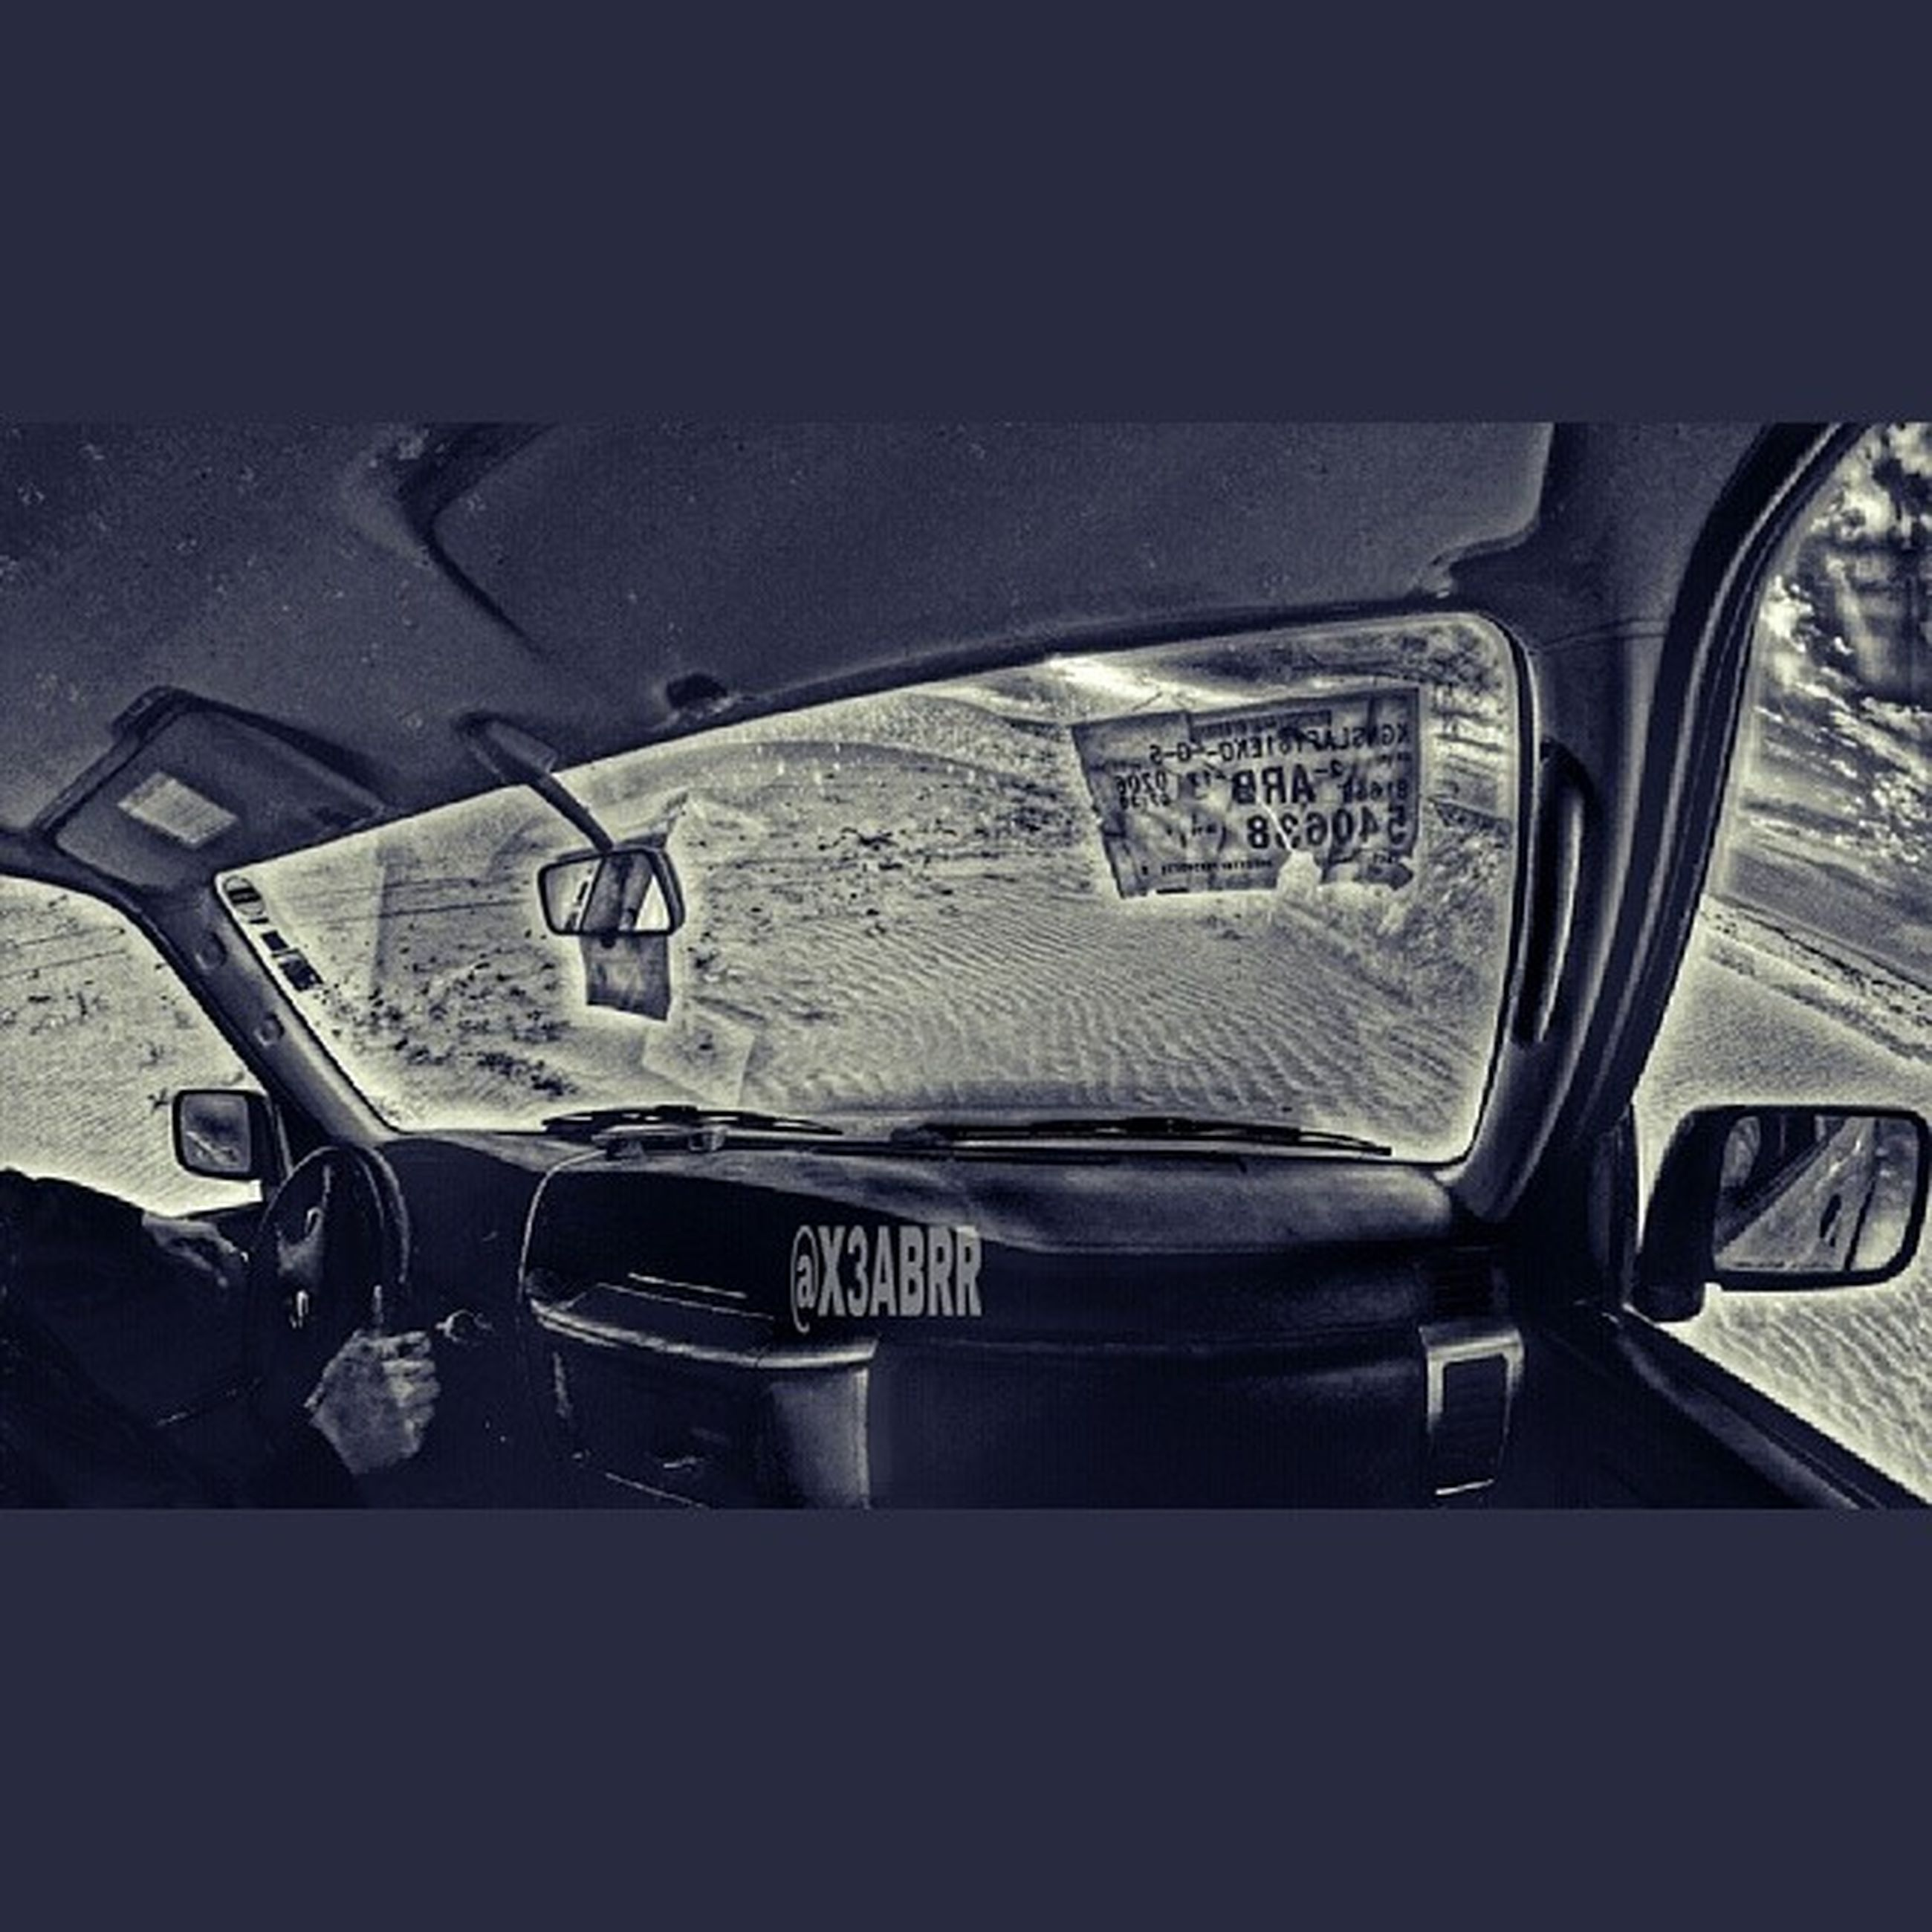 transportation, indoors, transfer print, car, mode of transport, land vehicle, vehicle interior, close-up, auto post production filter, car interior, vehicle seat, part of, no people, still life, window, absence, high angle view, table, day, reflection